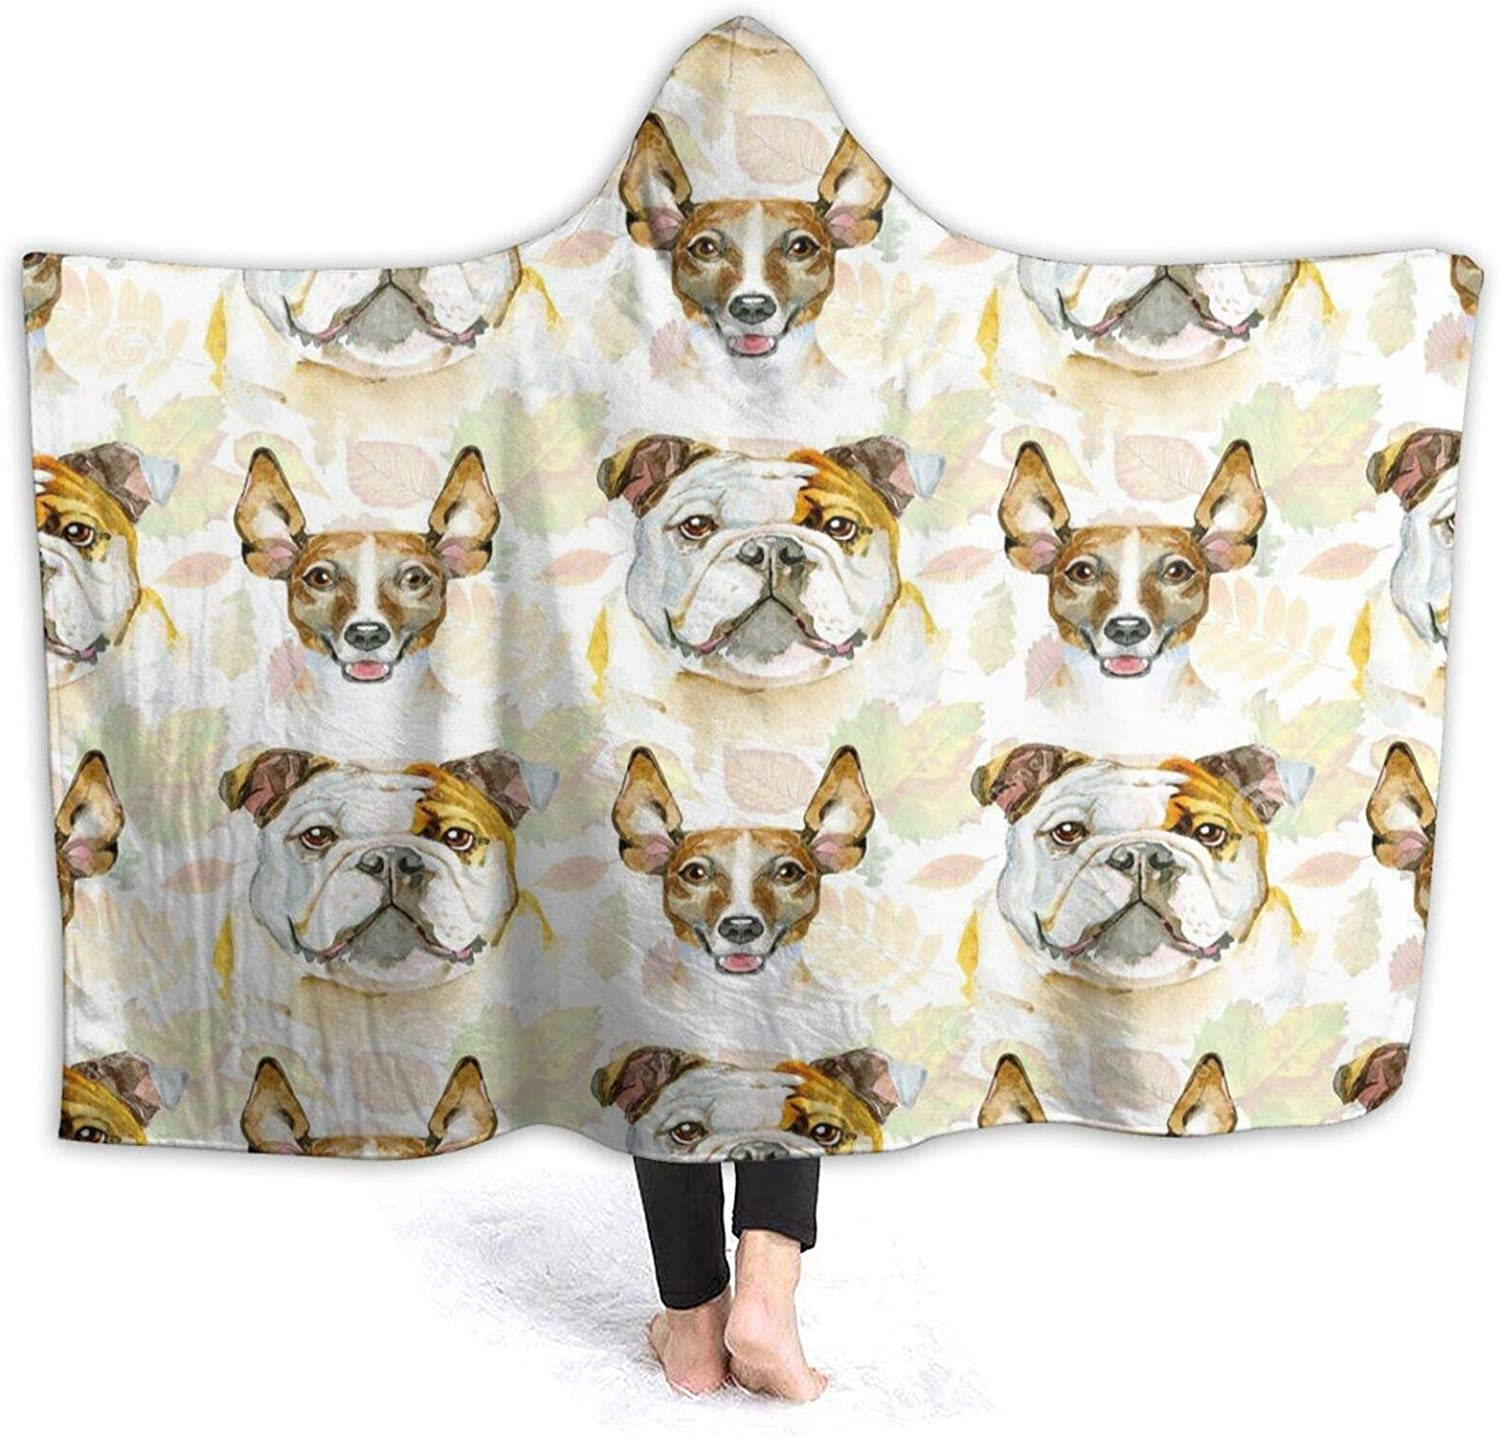 Unbeanded Corgi Dogs_WPS 2 Adult Oakland Mall Soldering H and Children Blanket Hoodie